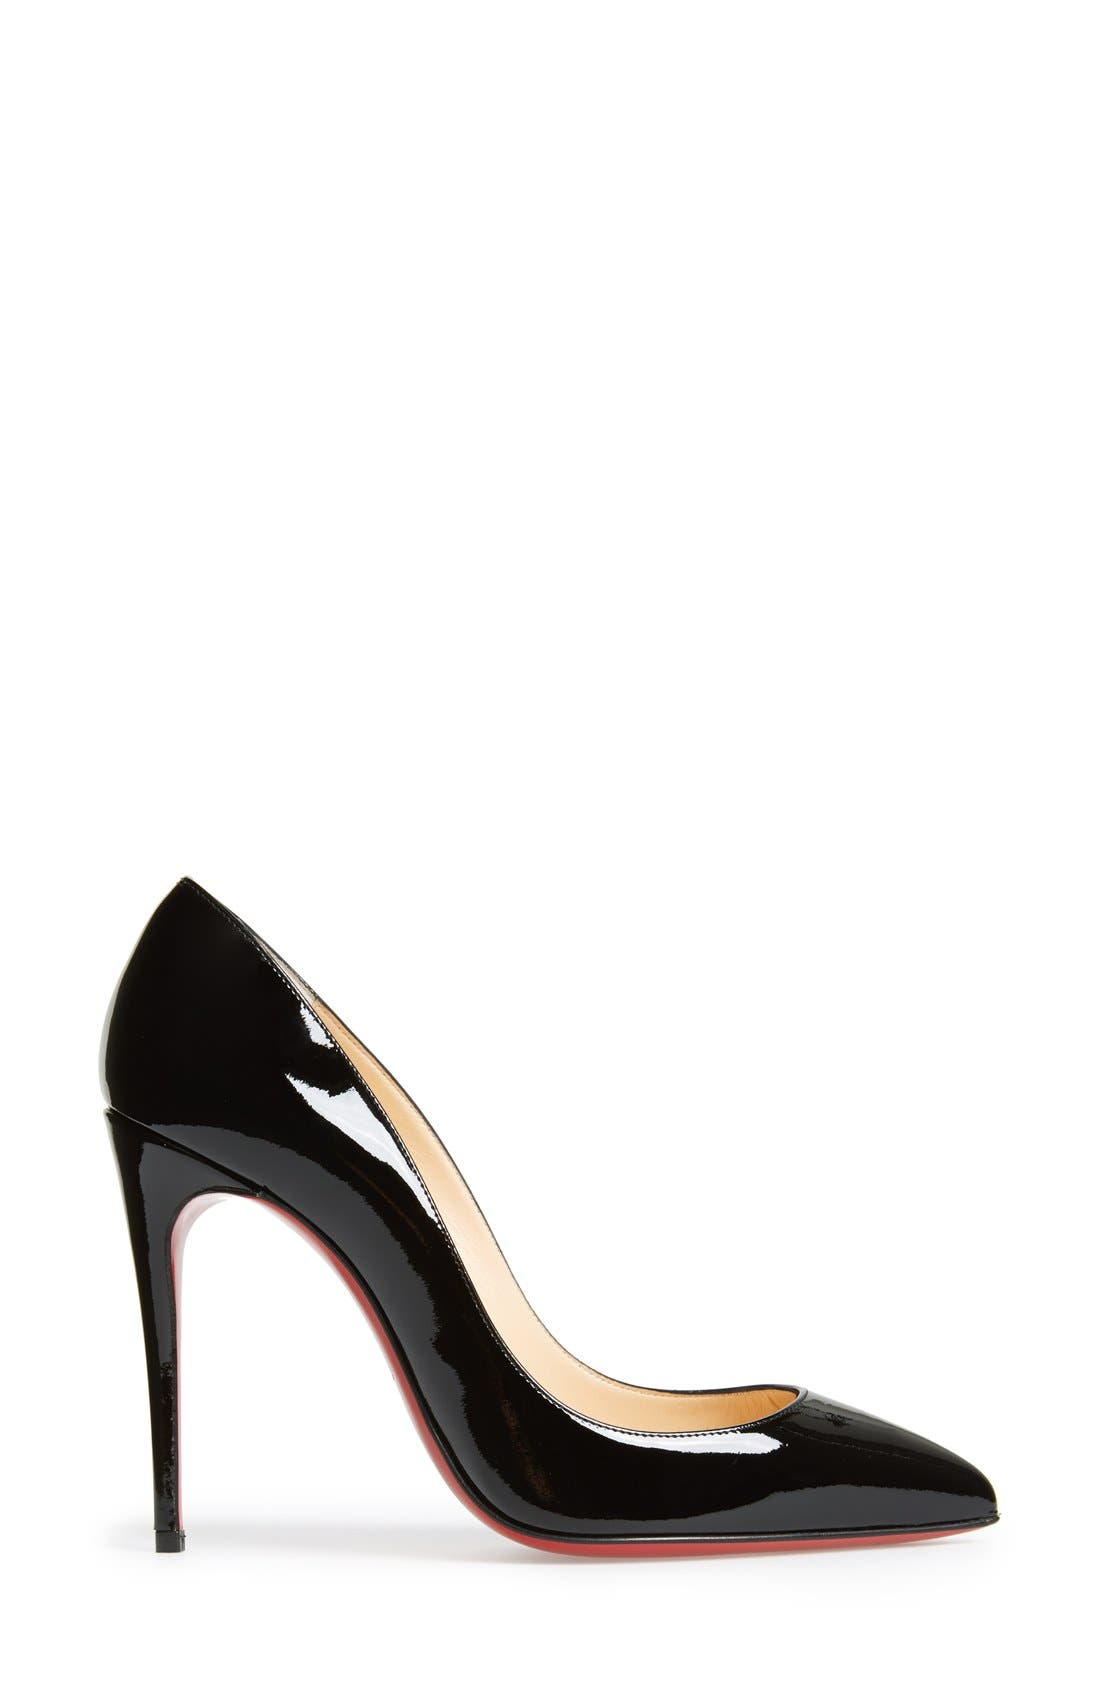 'Pigalle Follies' Pointy Toe Pump,                             Alternate thumbnail 4, color,                             Black Patent